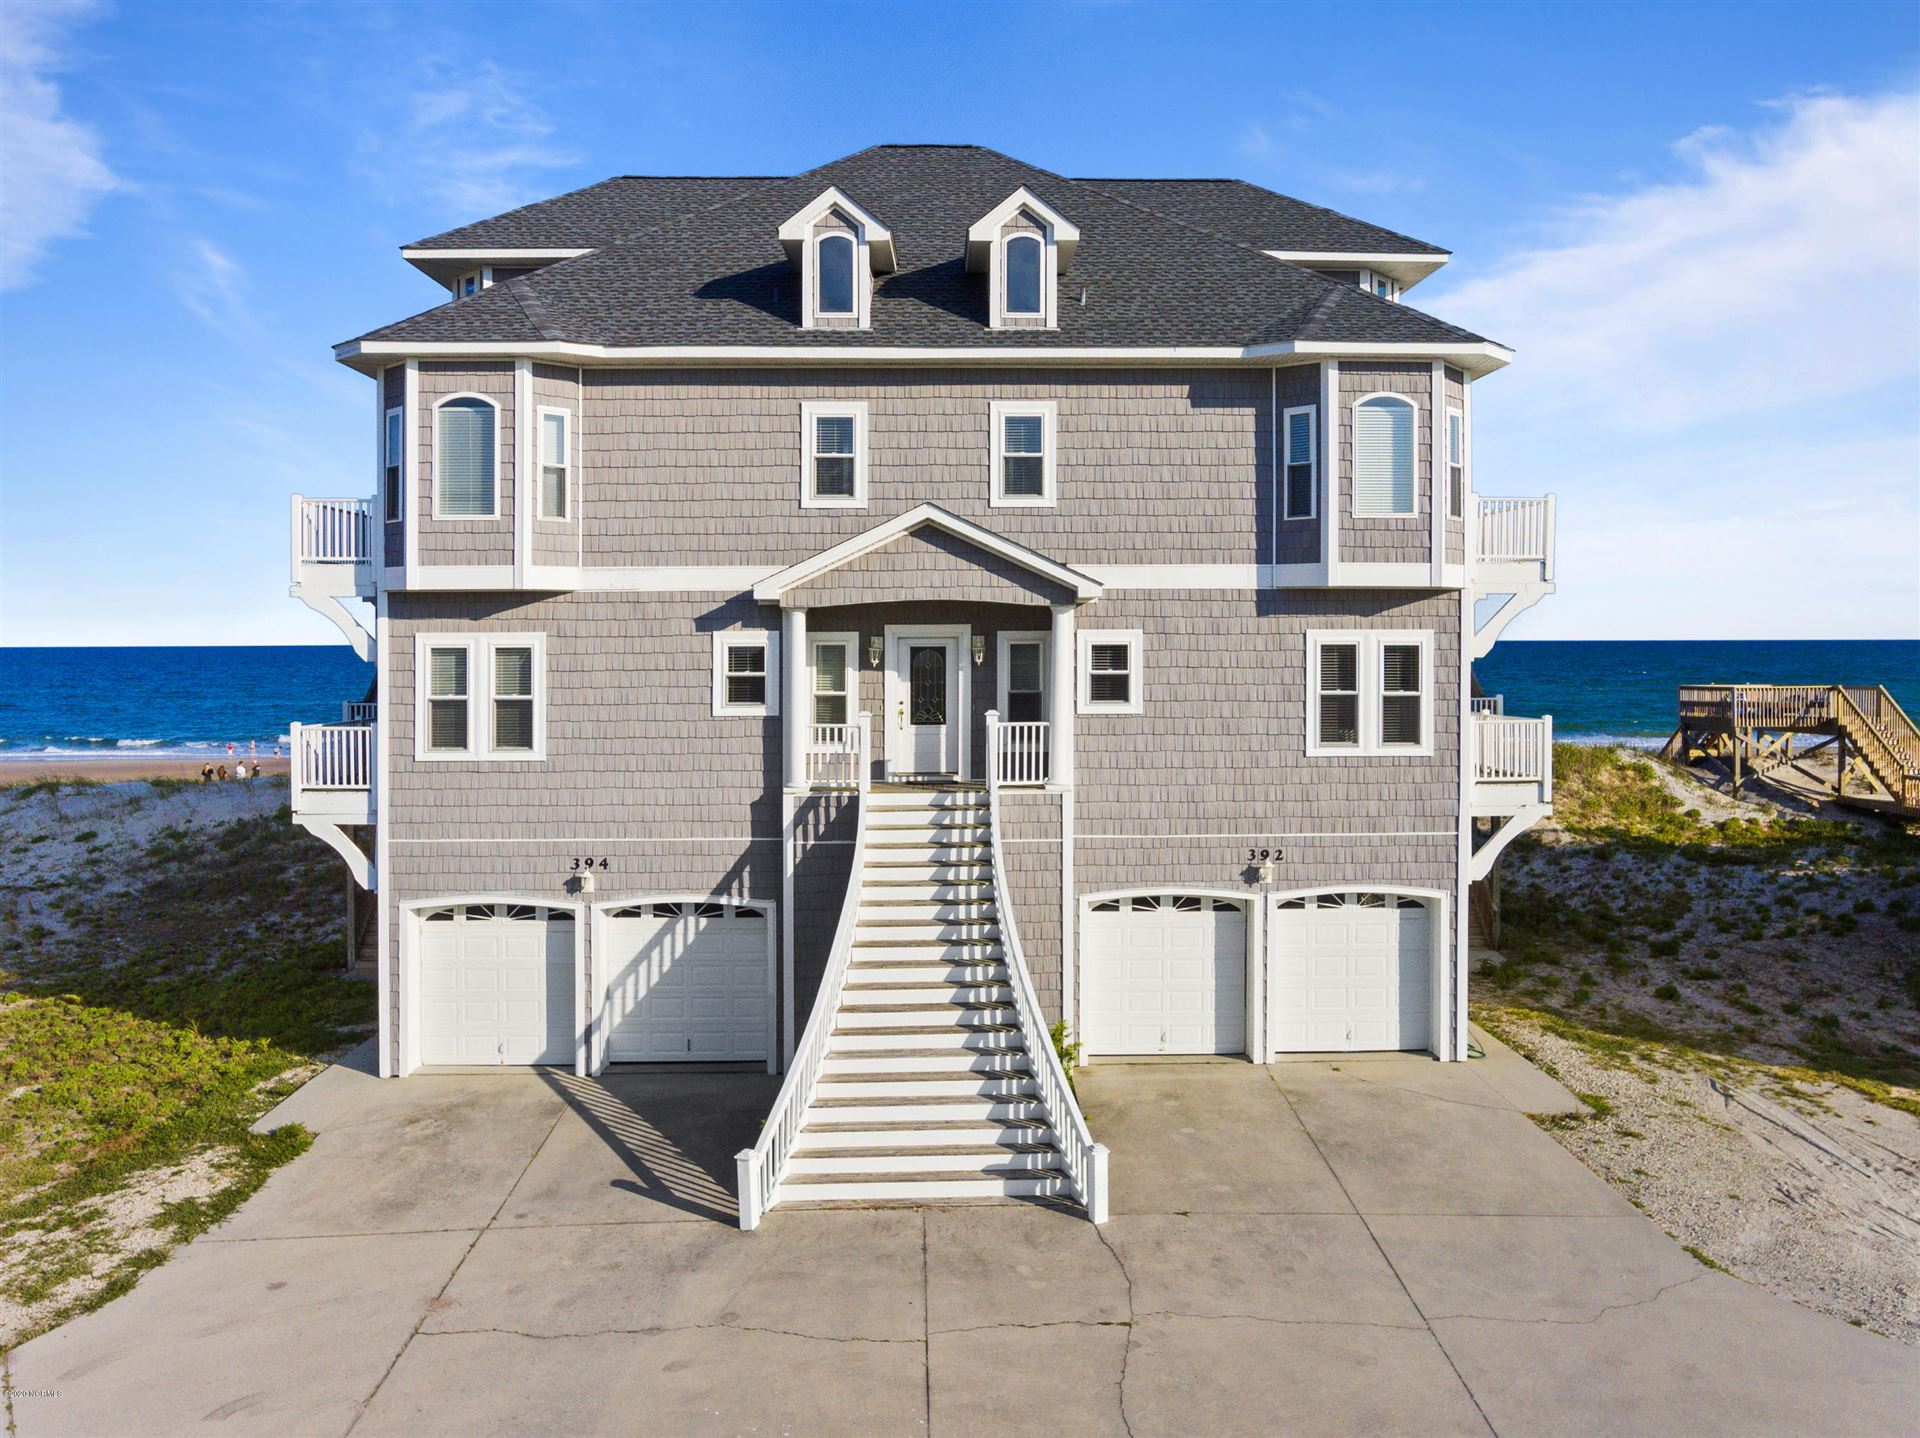 392\/394 New River Inlet Road, North Topsail Beach, NC 28460 - MLS#: 100224019